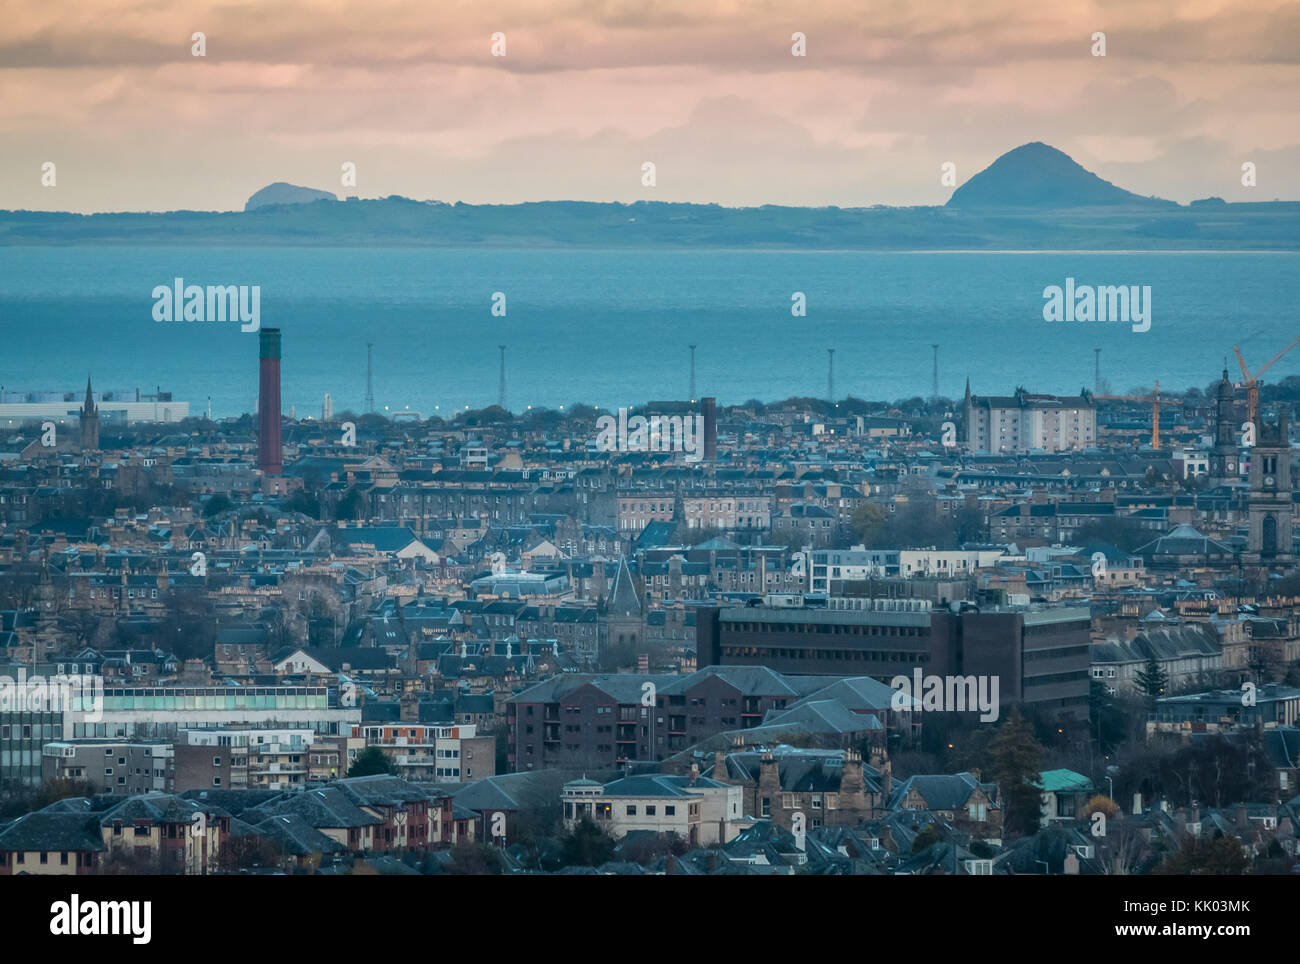 Edinburgh skyline, Firth of Forth, volcanic plugs of Berwick law and Bass Rock, seen from rest and be Thankful, Stock Photo